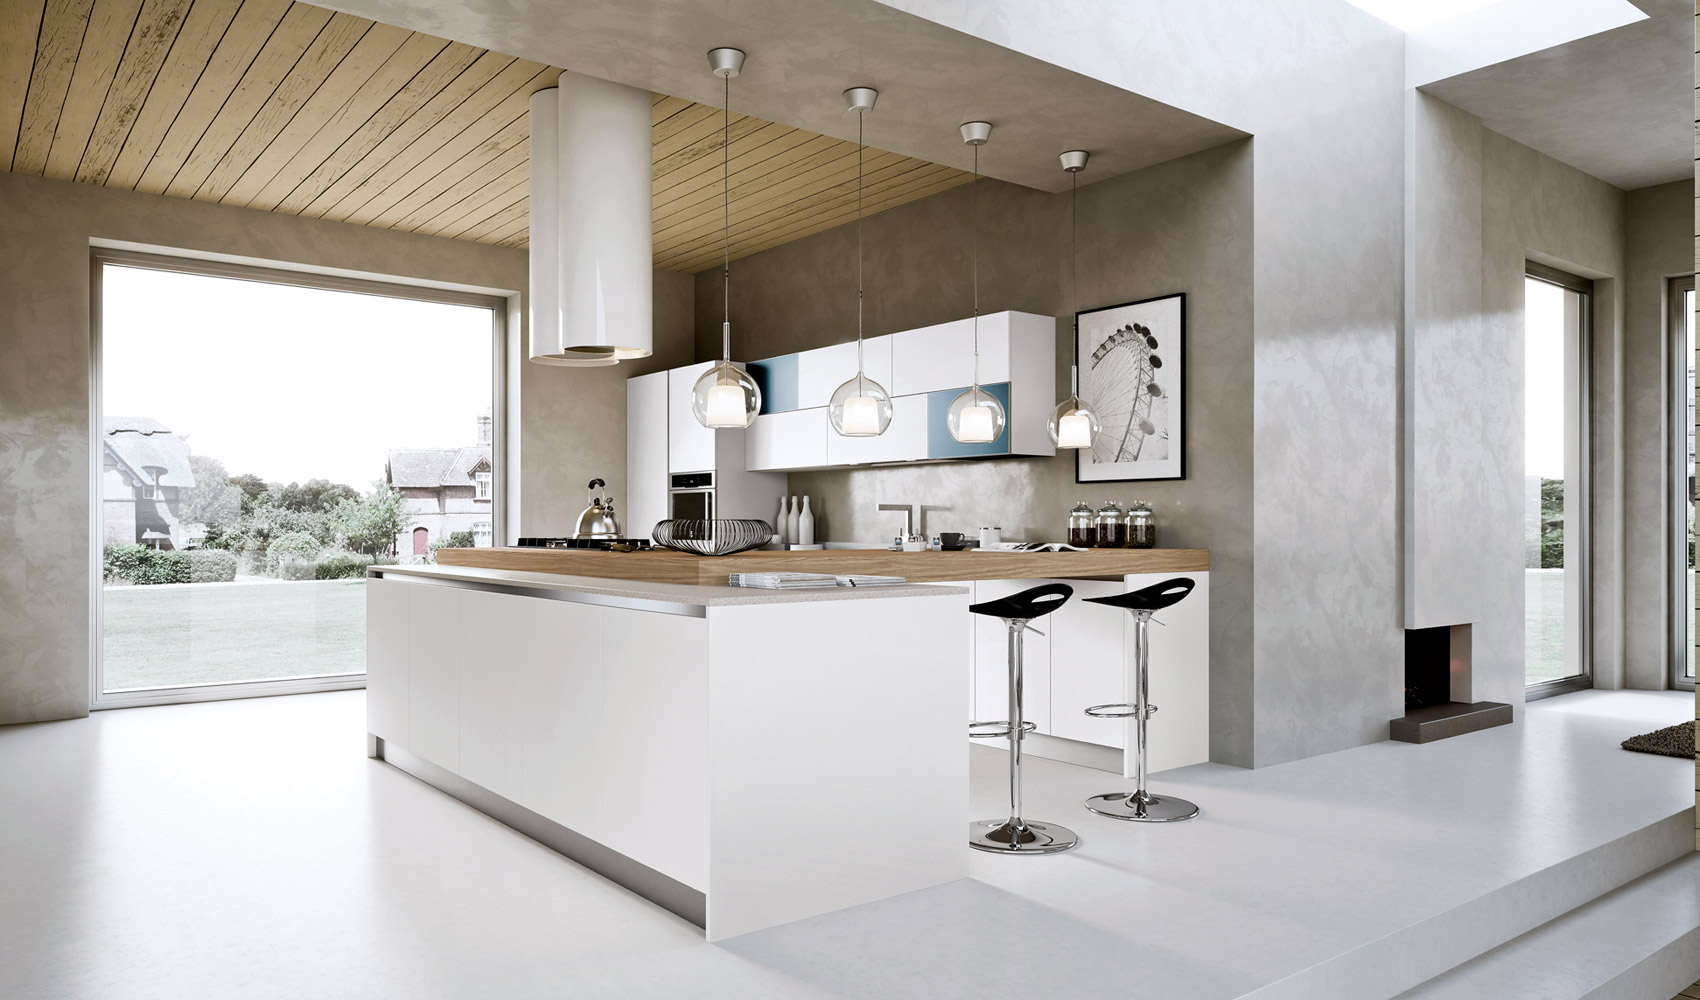 White kitchen interior design ideas for Kitchen interior designs pictures